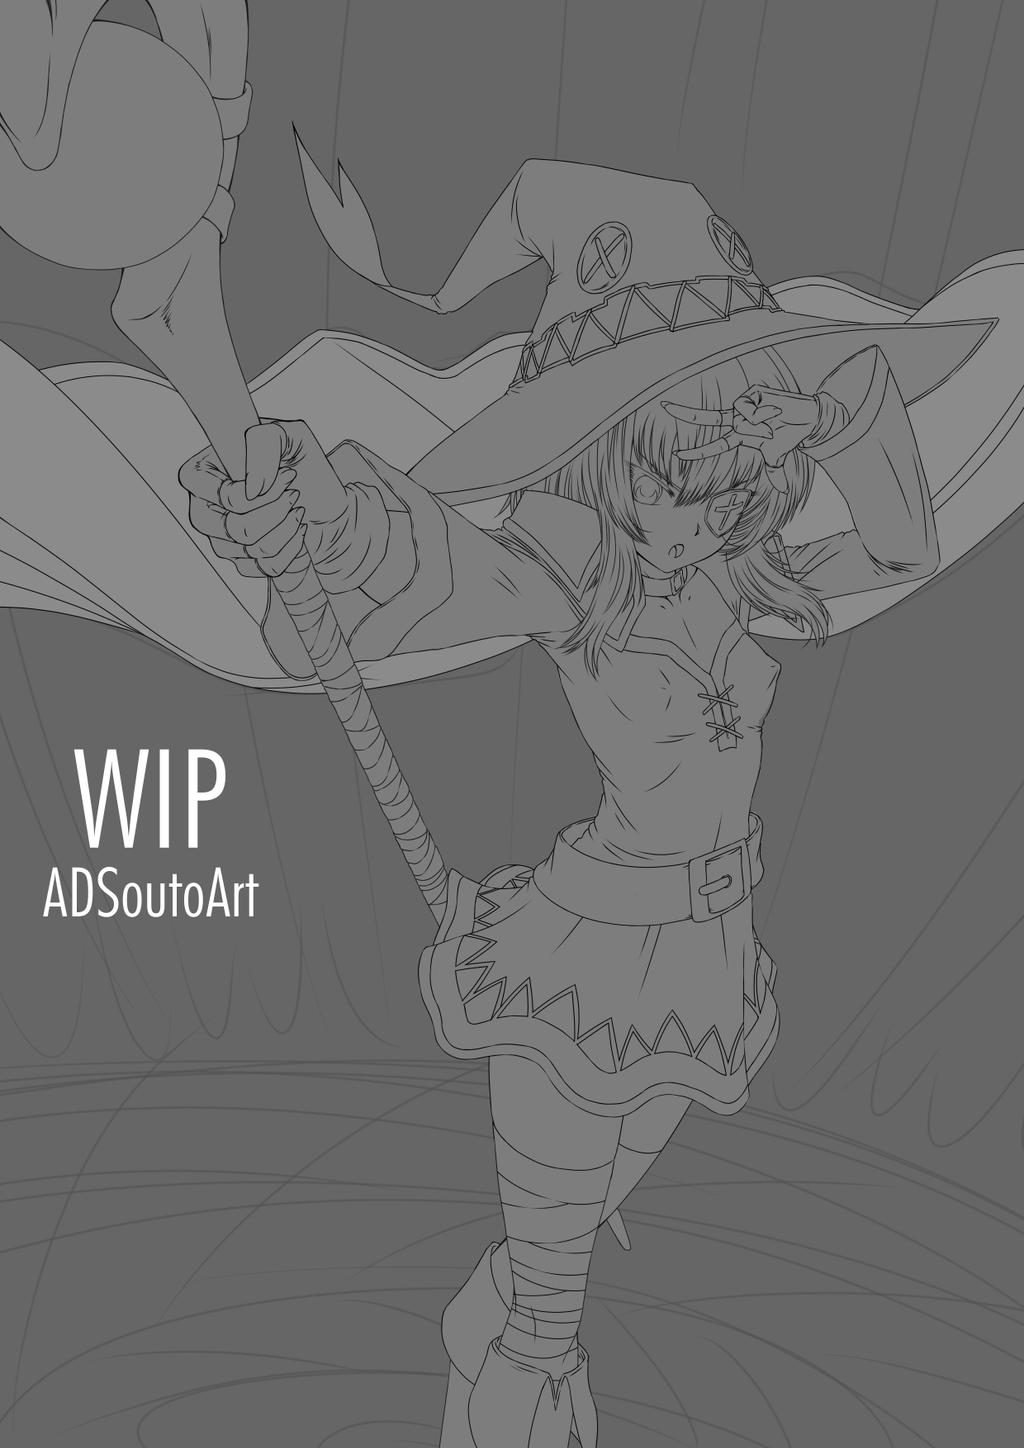 WIP - Megumin Arch Wizard by ADSouto